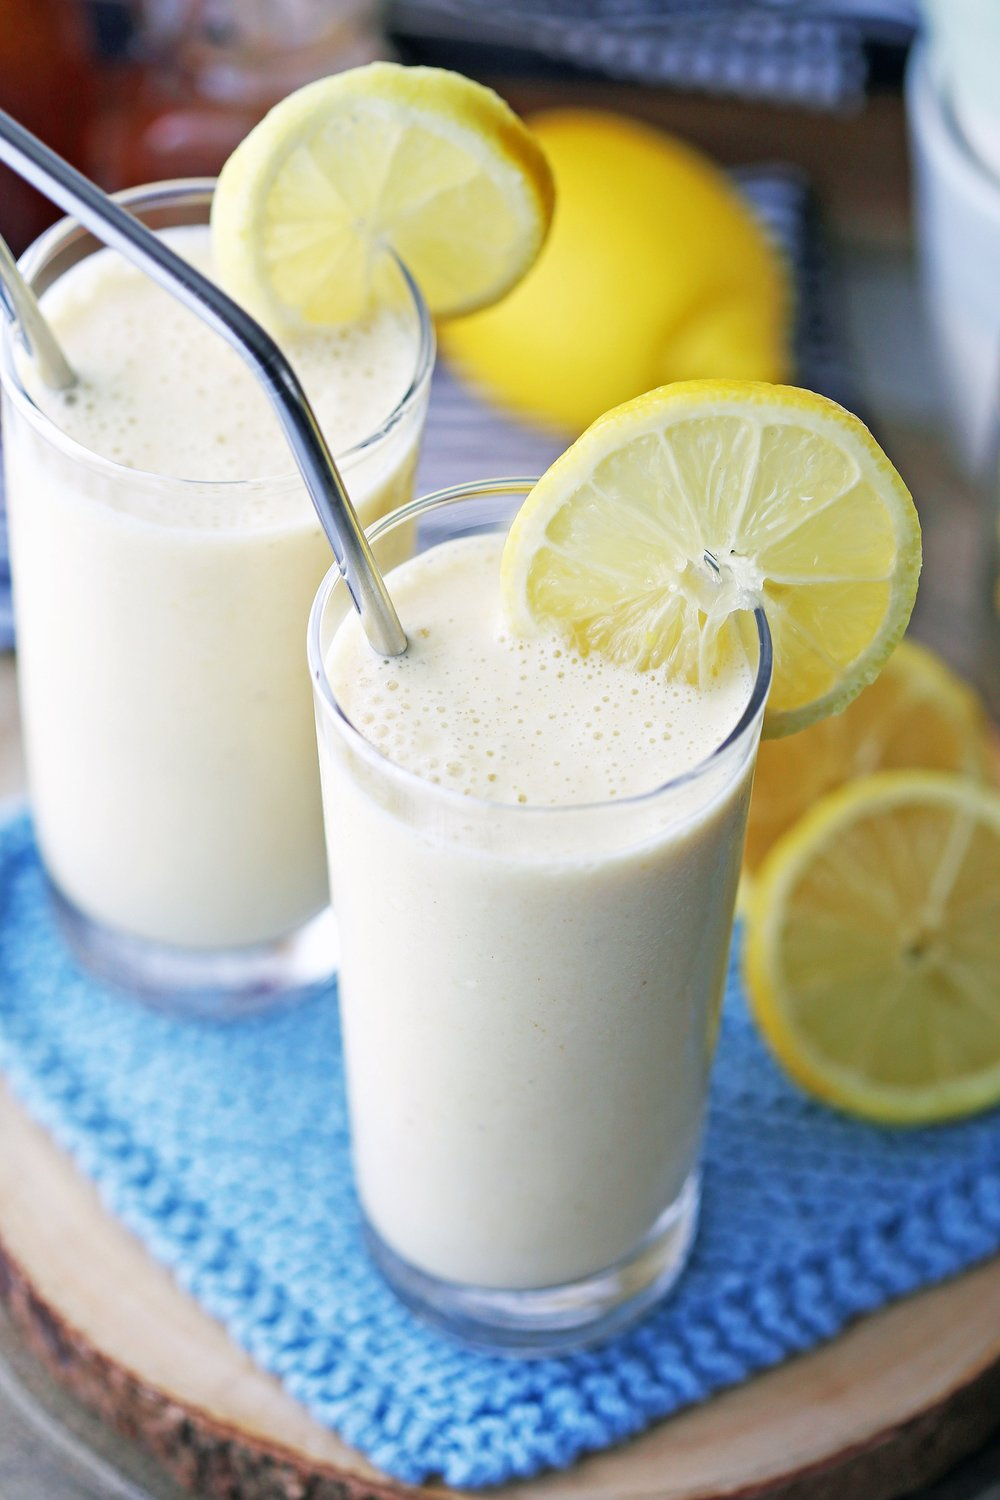 Two tall glasses filled with Lemon Pineapple Smoothies that's garnished with lemon slices.